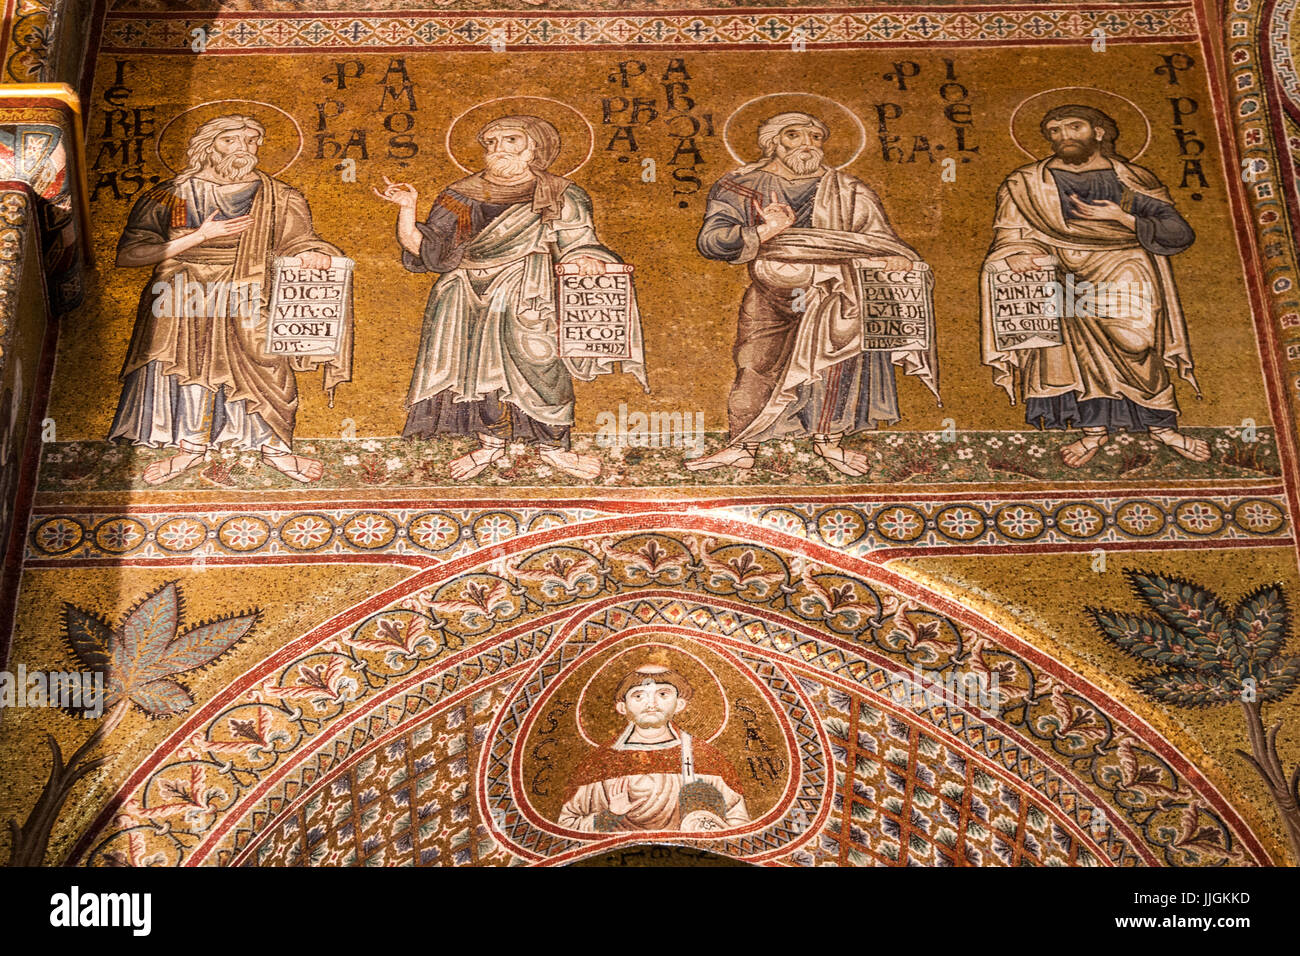 monreale mosaics stock photos monreale mosaics stock images alamy